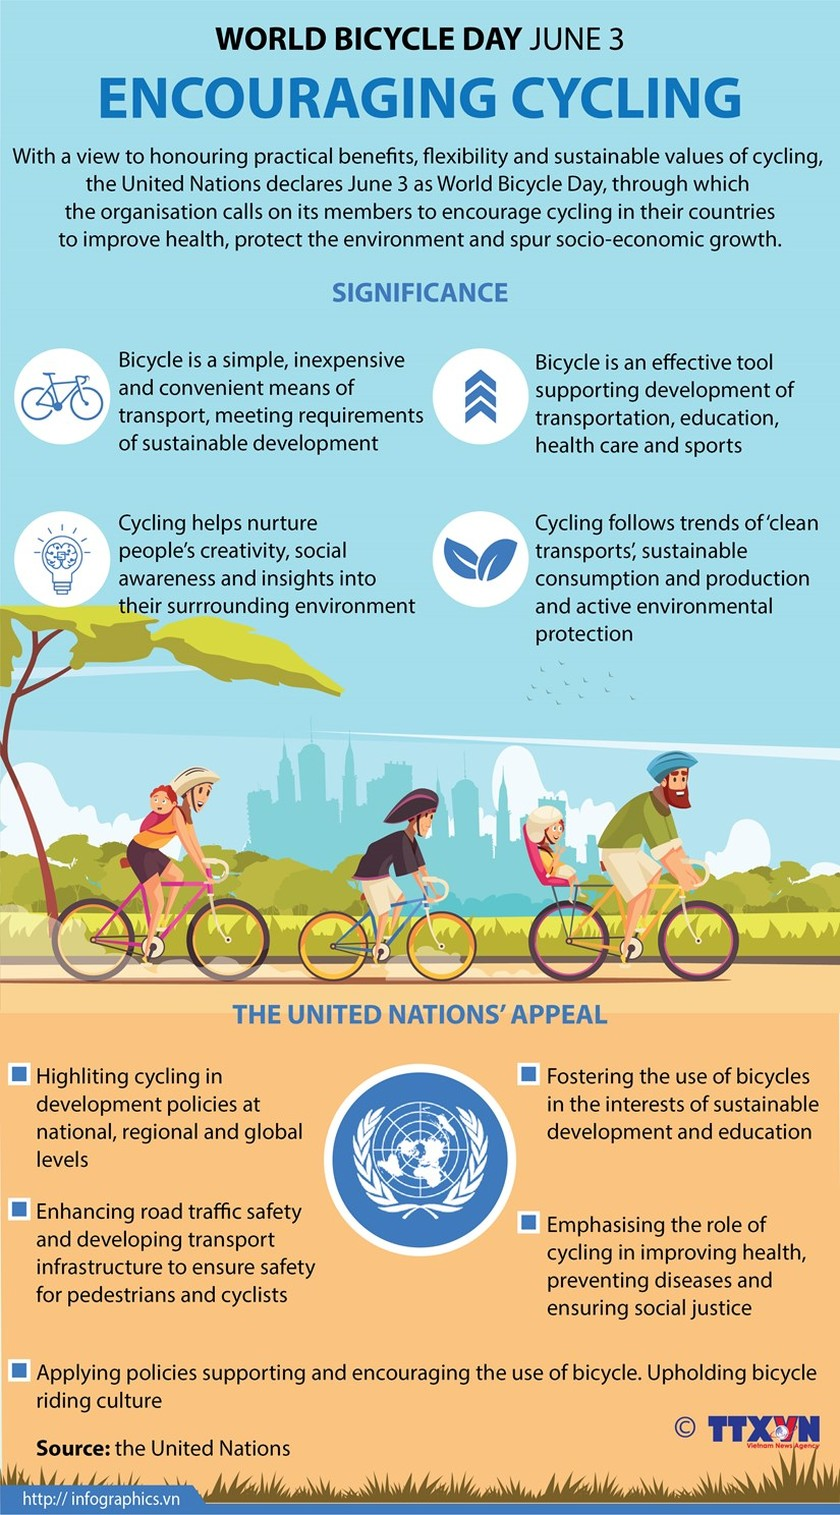 World Bicycle Day encourages cycling ảnh 1